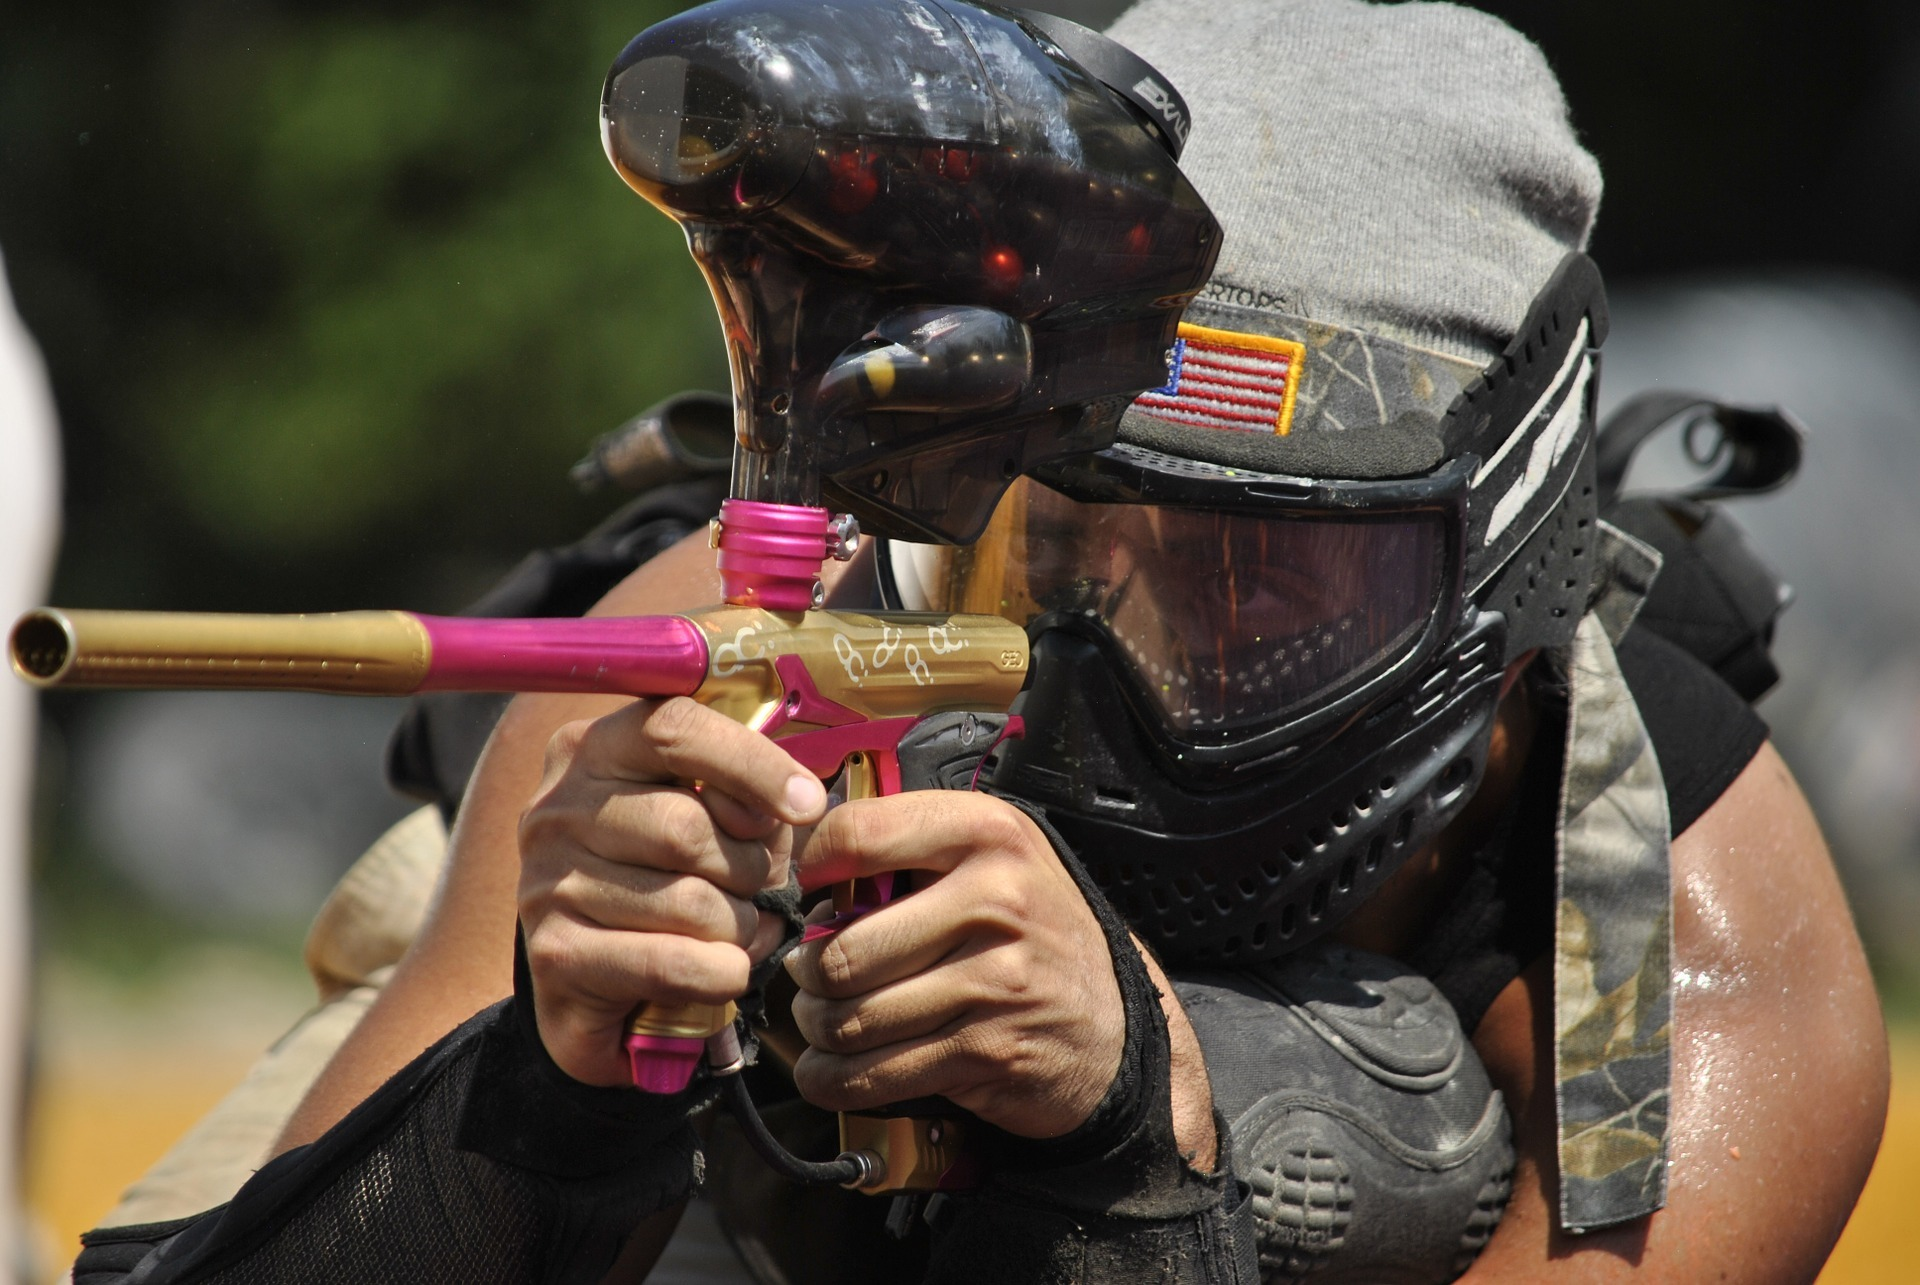 Man holding a paintball gun and wearing helmet is playing paintball